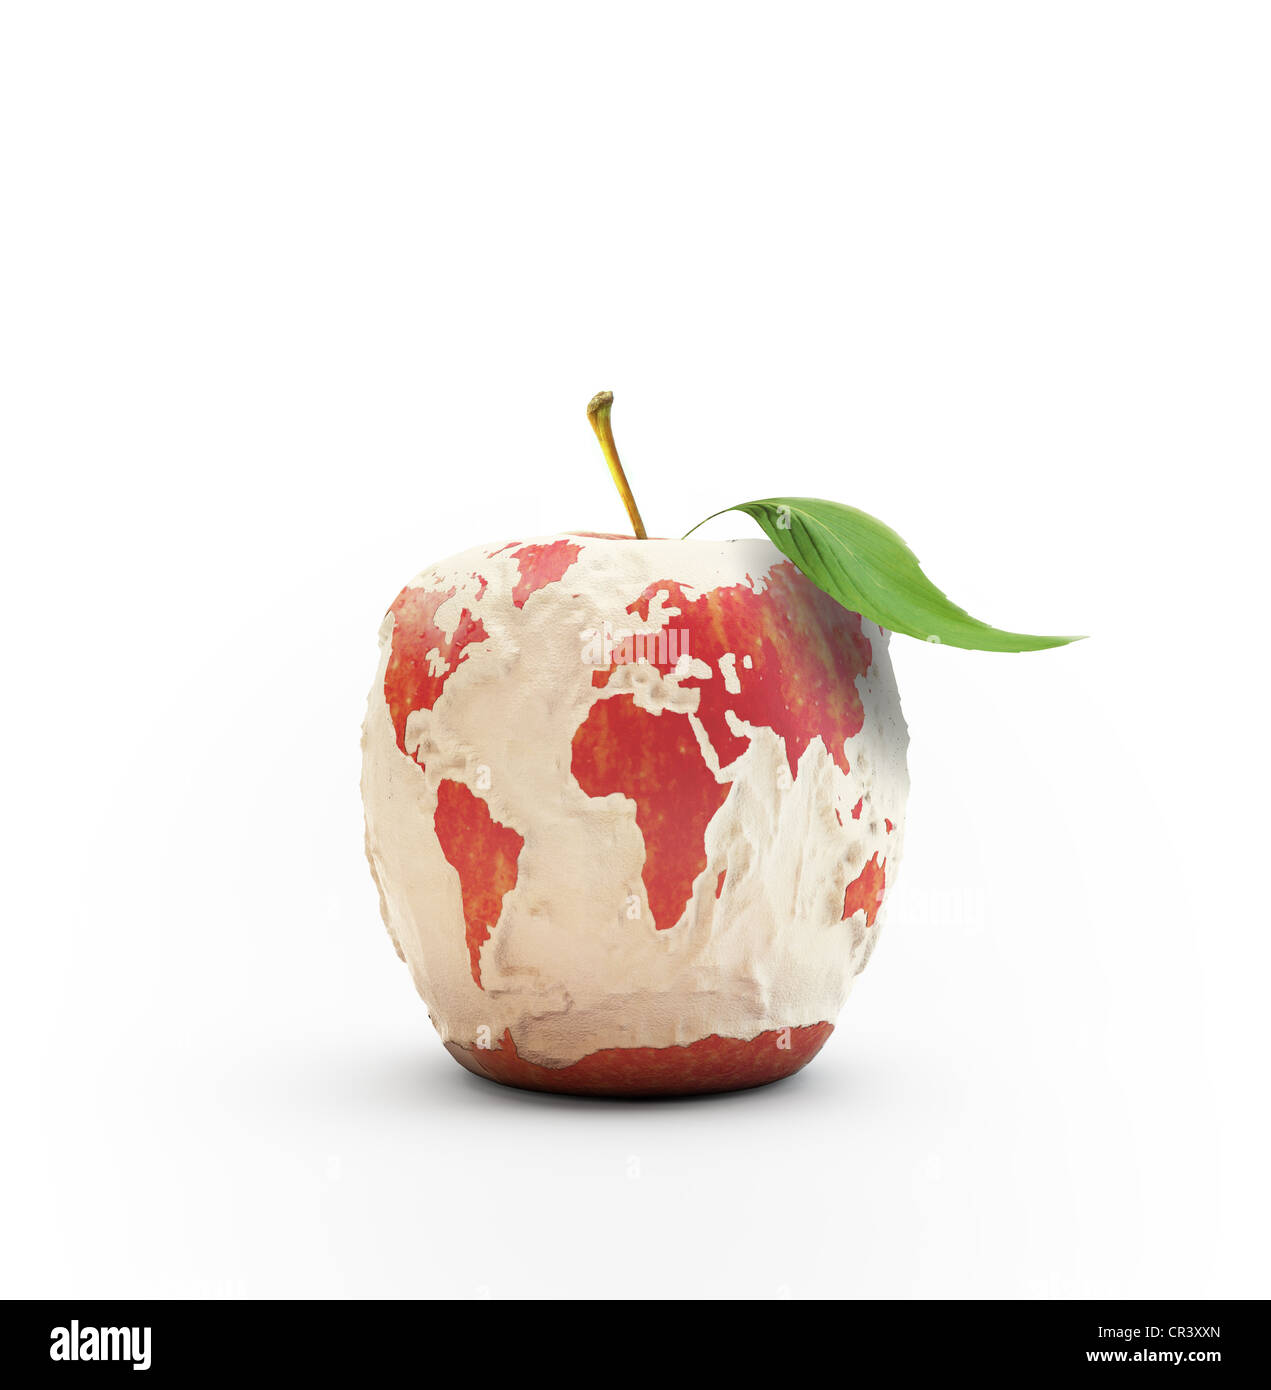 Peeled apple forming the world map - Stock Image